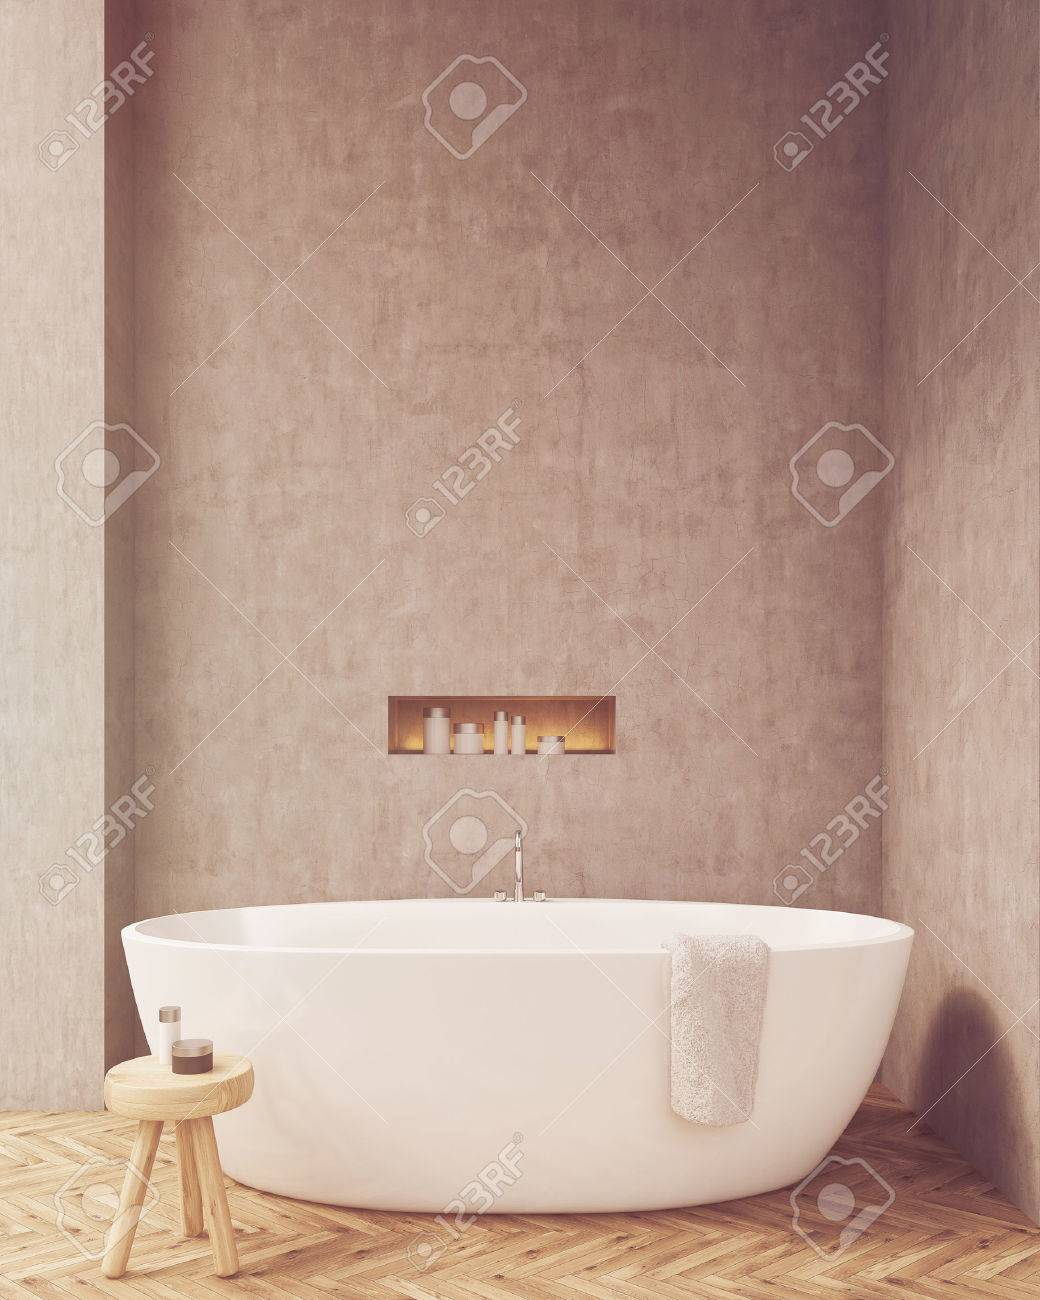 Badezimmer Stuhl Design Stock Photo